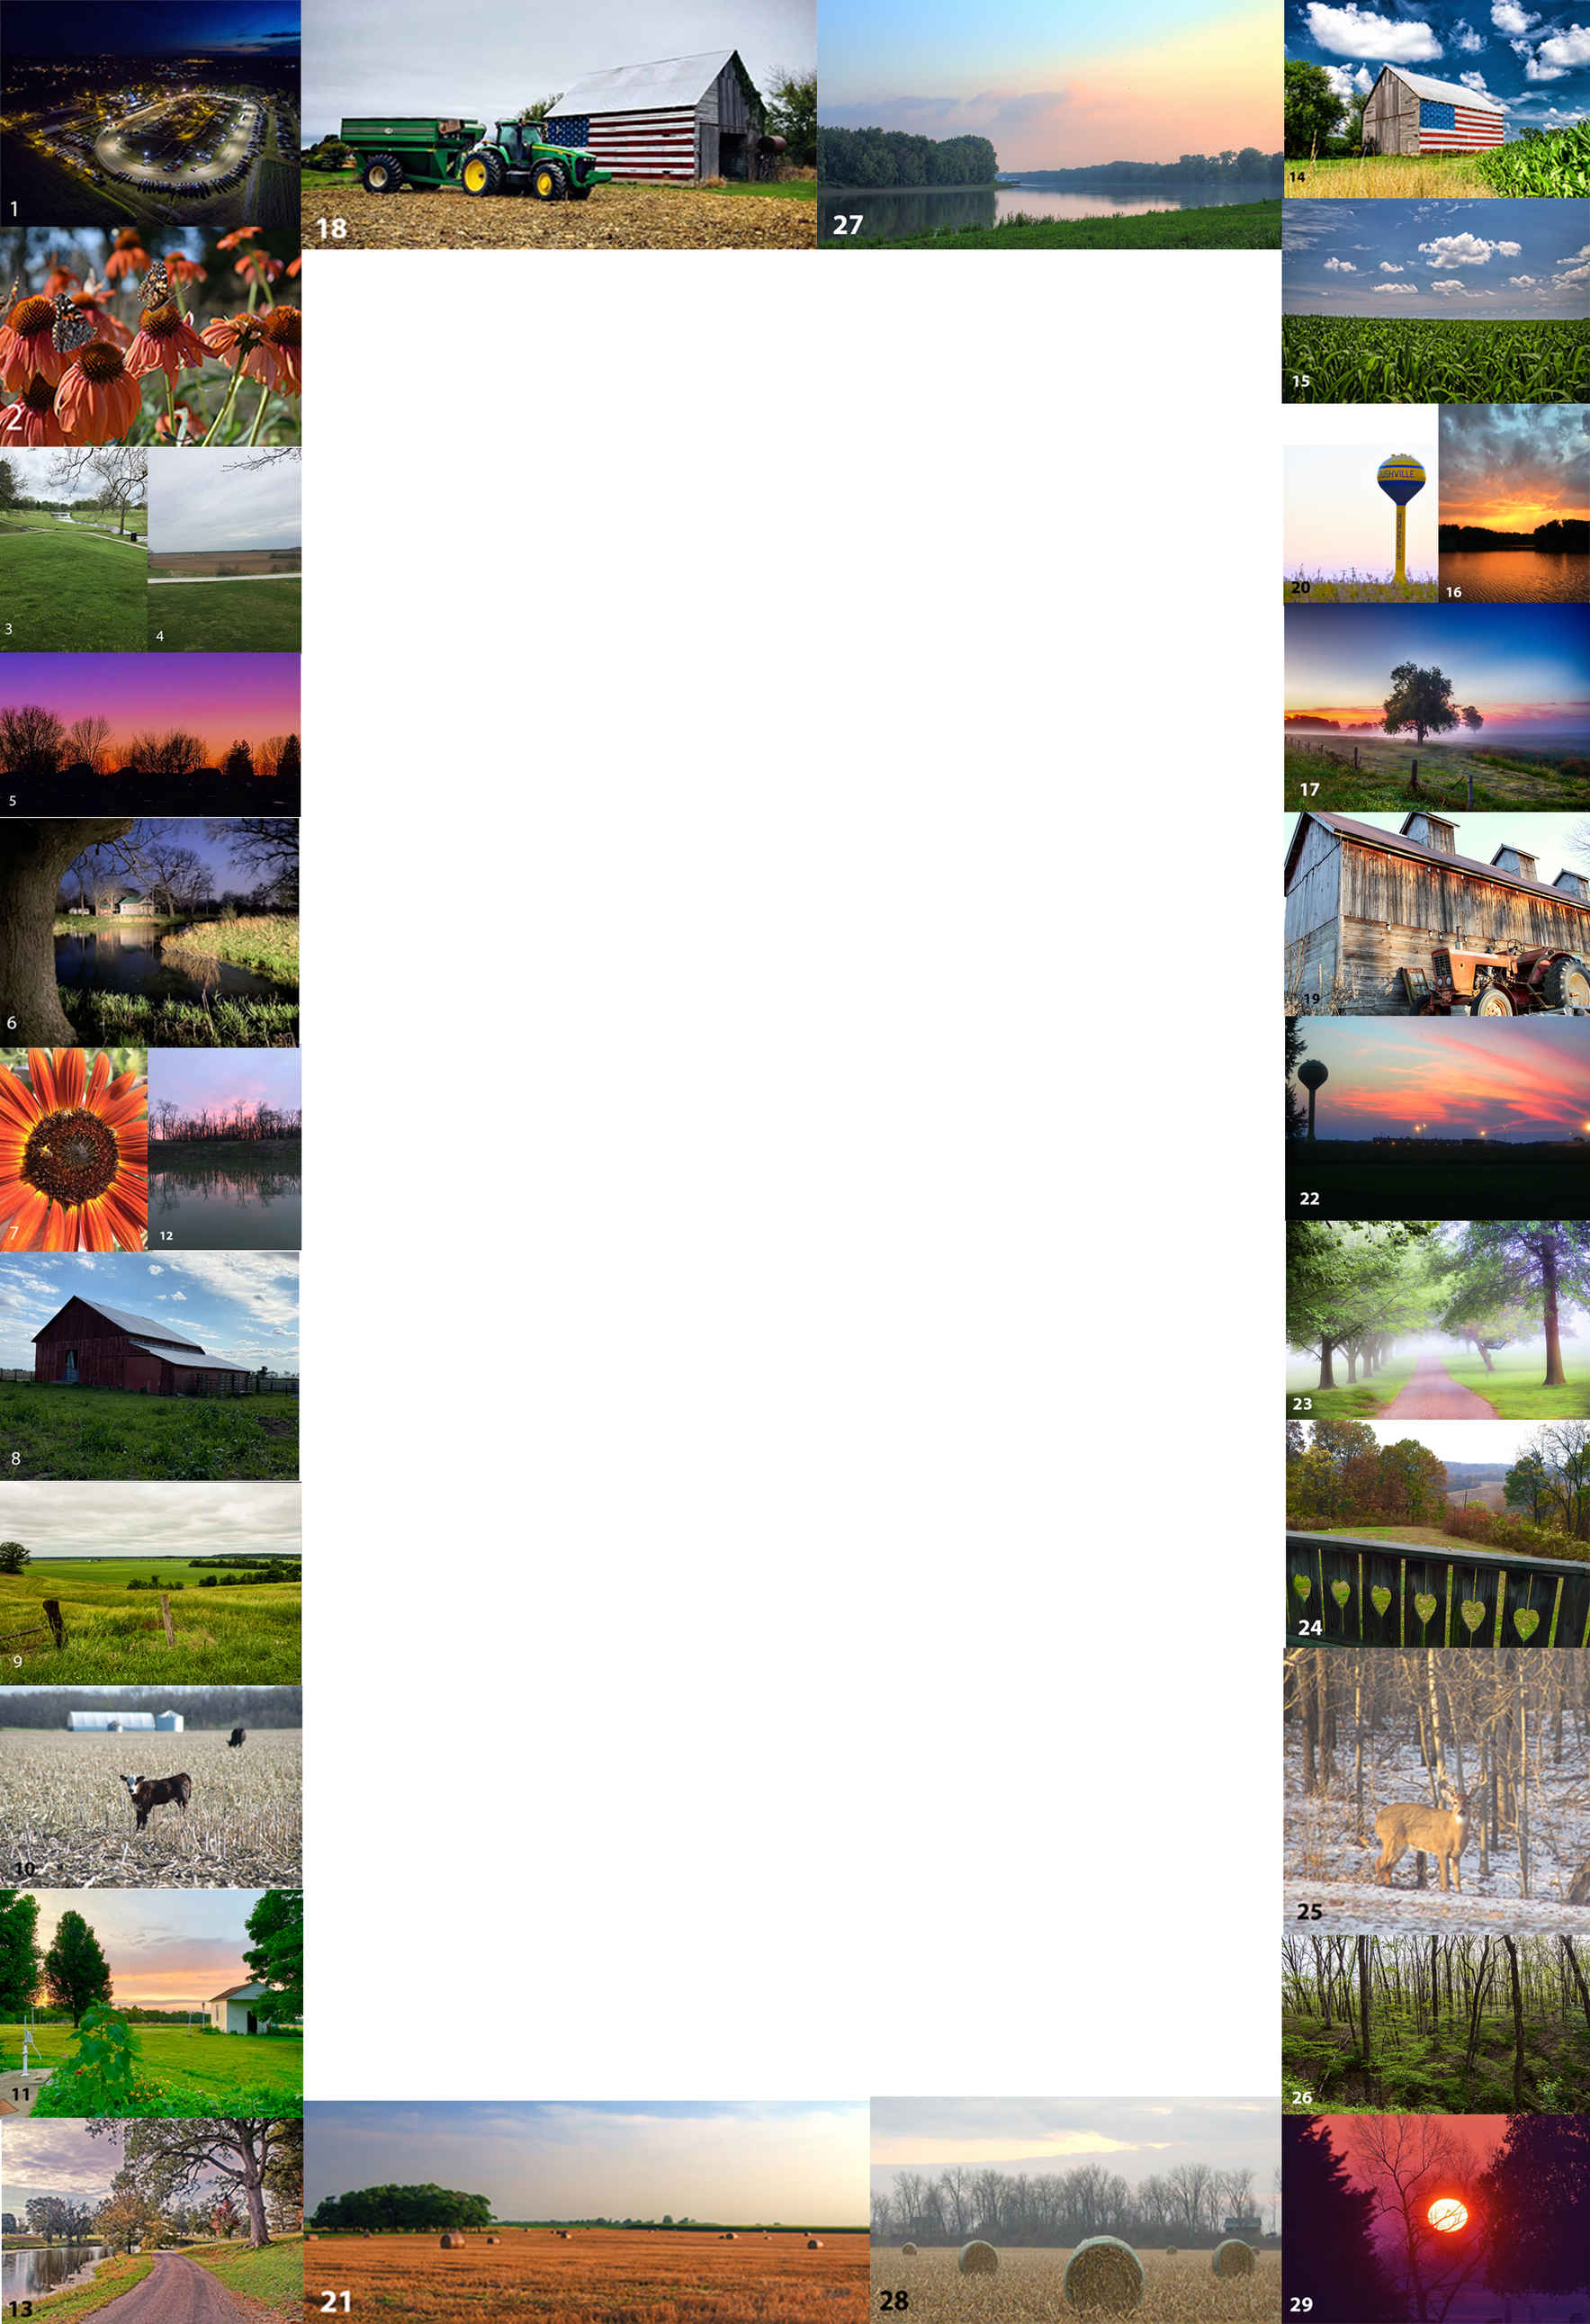 Mural Photography Contest image